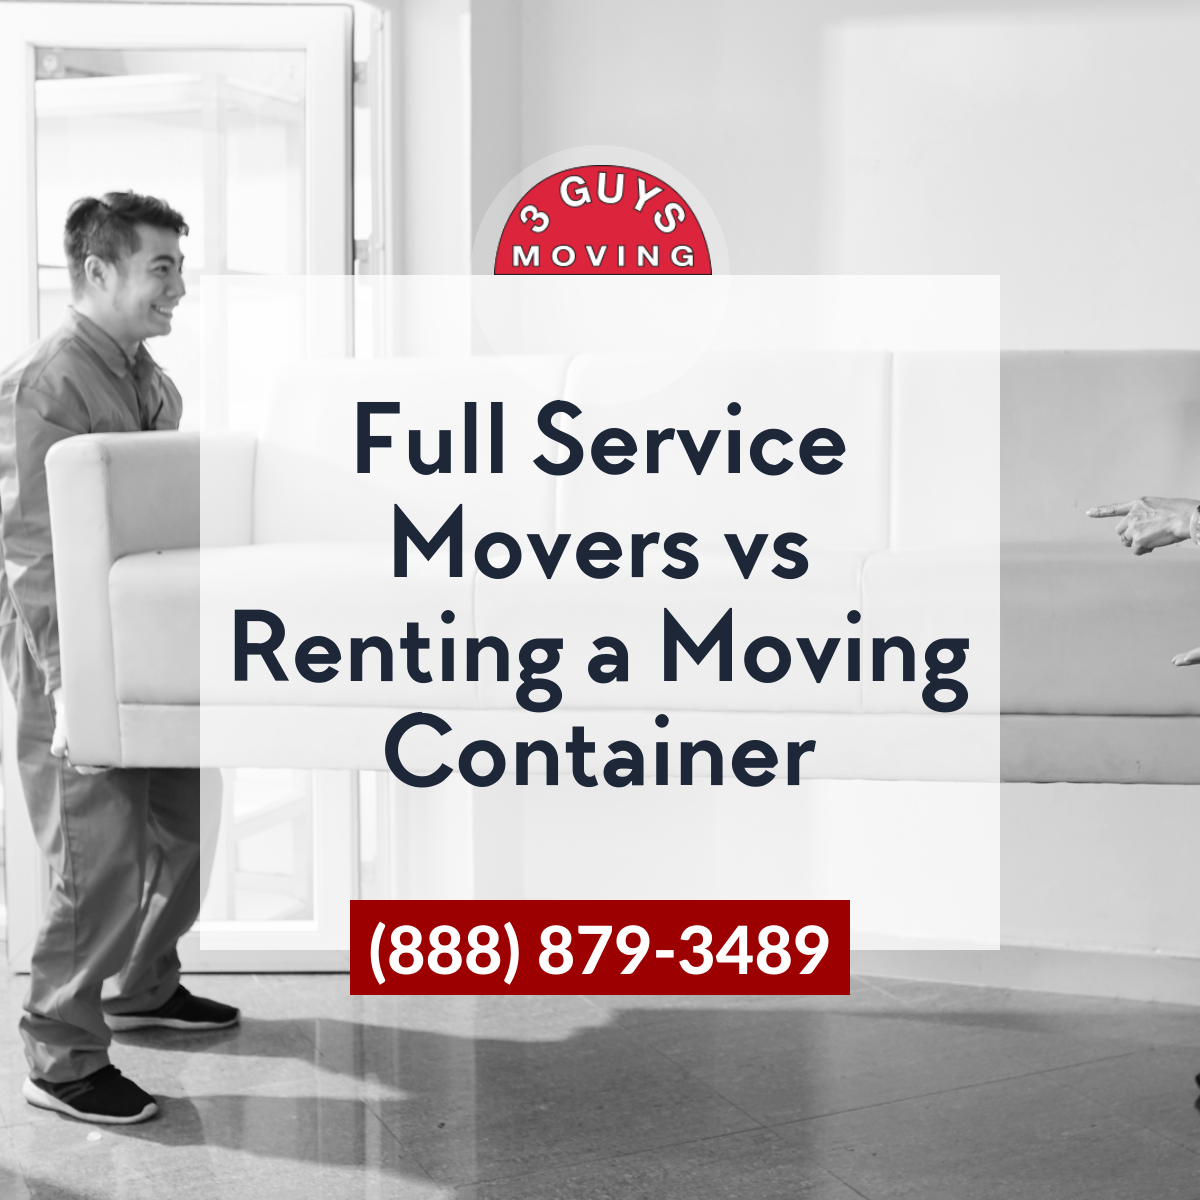 Full Service Movers vs Renting a Moving Container - Full Service Movers vs Renting a Moving Container